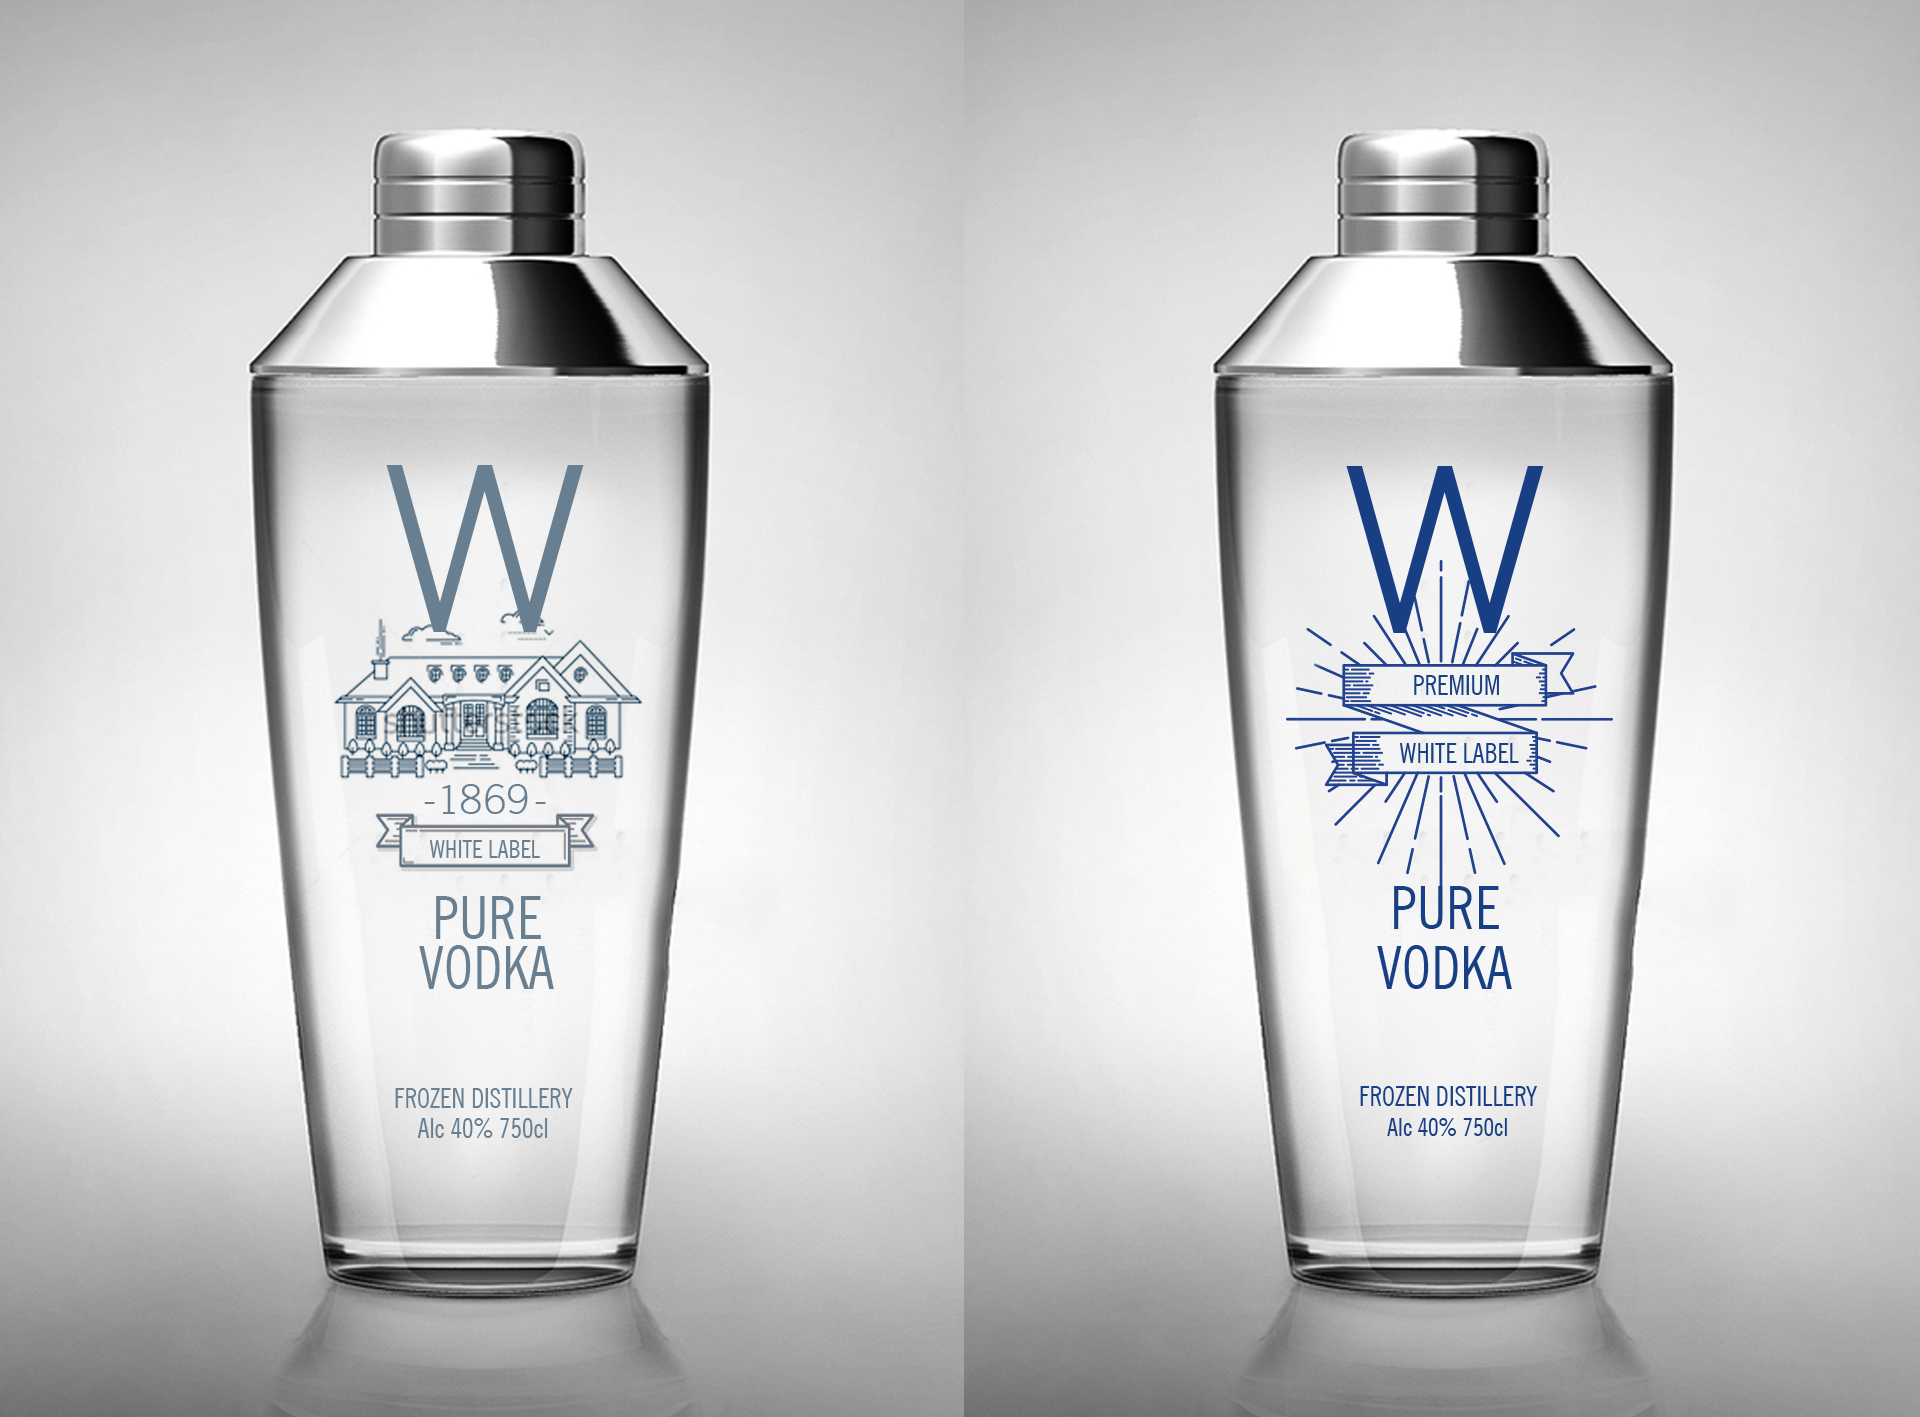 W-BRANDED-BOTTLE-PURE-VODKA-BY-GEORGE-DIMOPOULOS-002-003